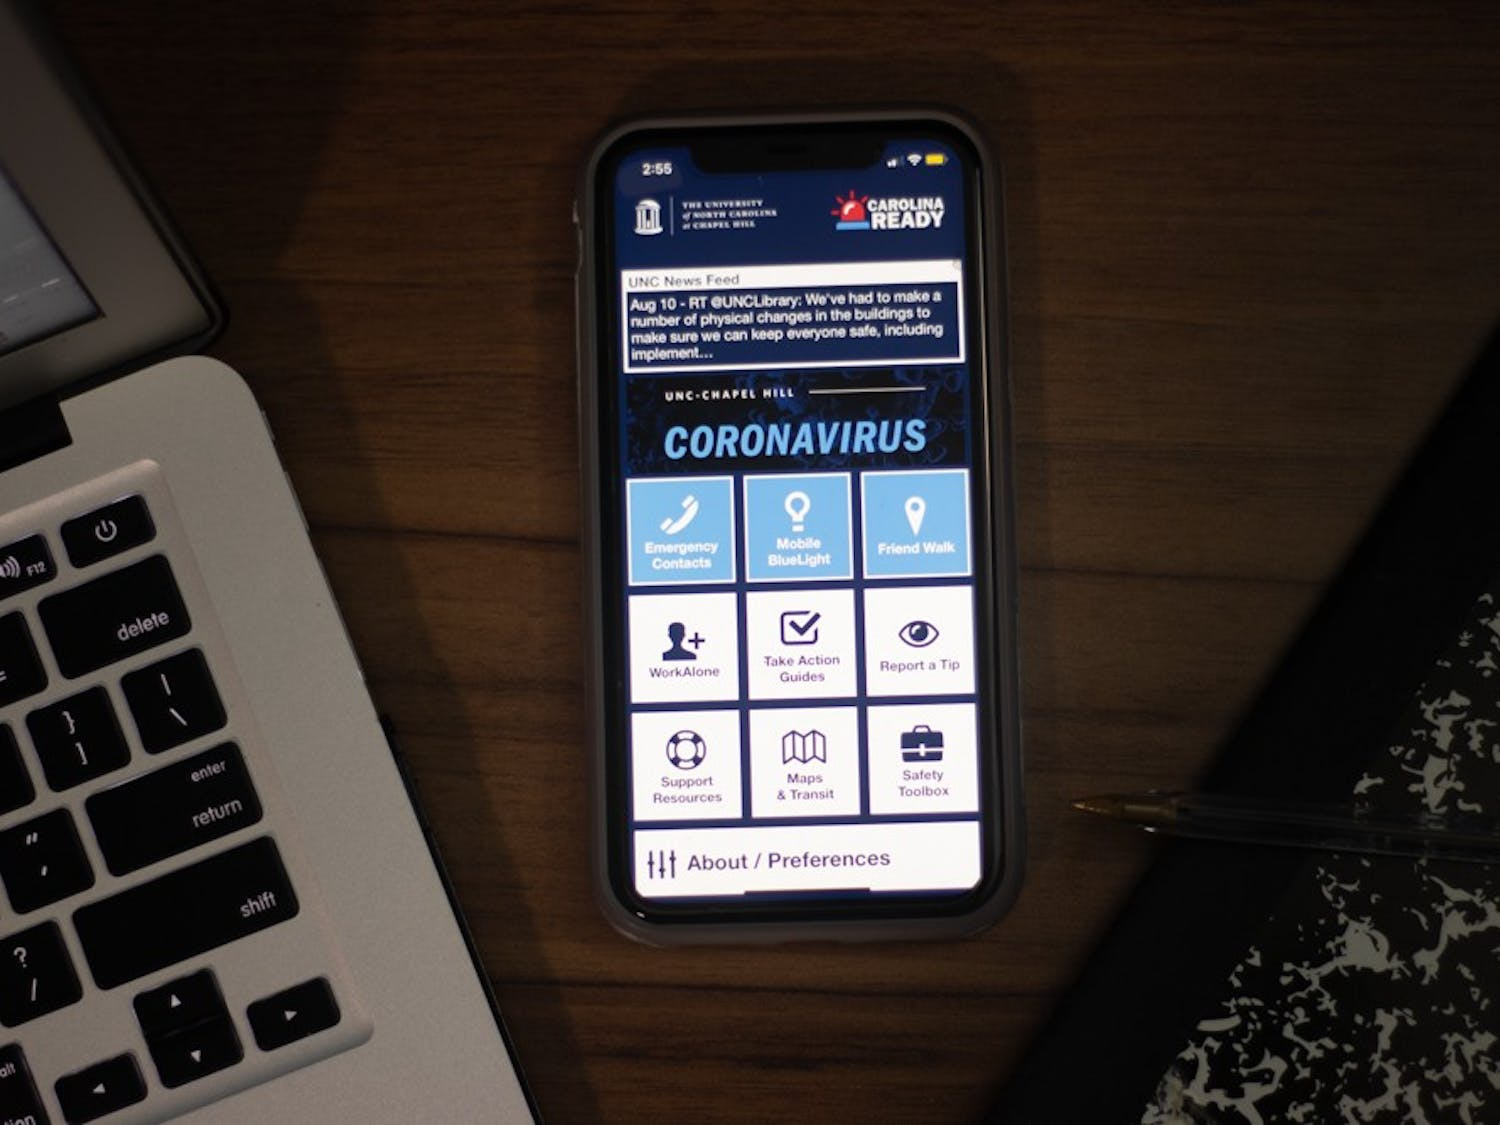 The Carolina Ready app will provide resources for COVID-19 to UNC students, but some people are worried about the safety and security of the app.